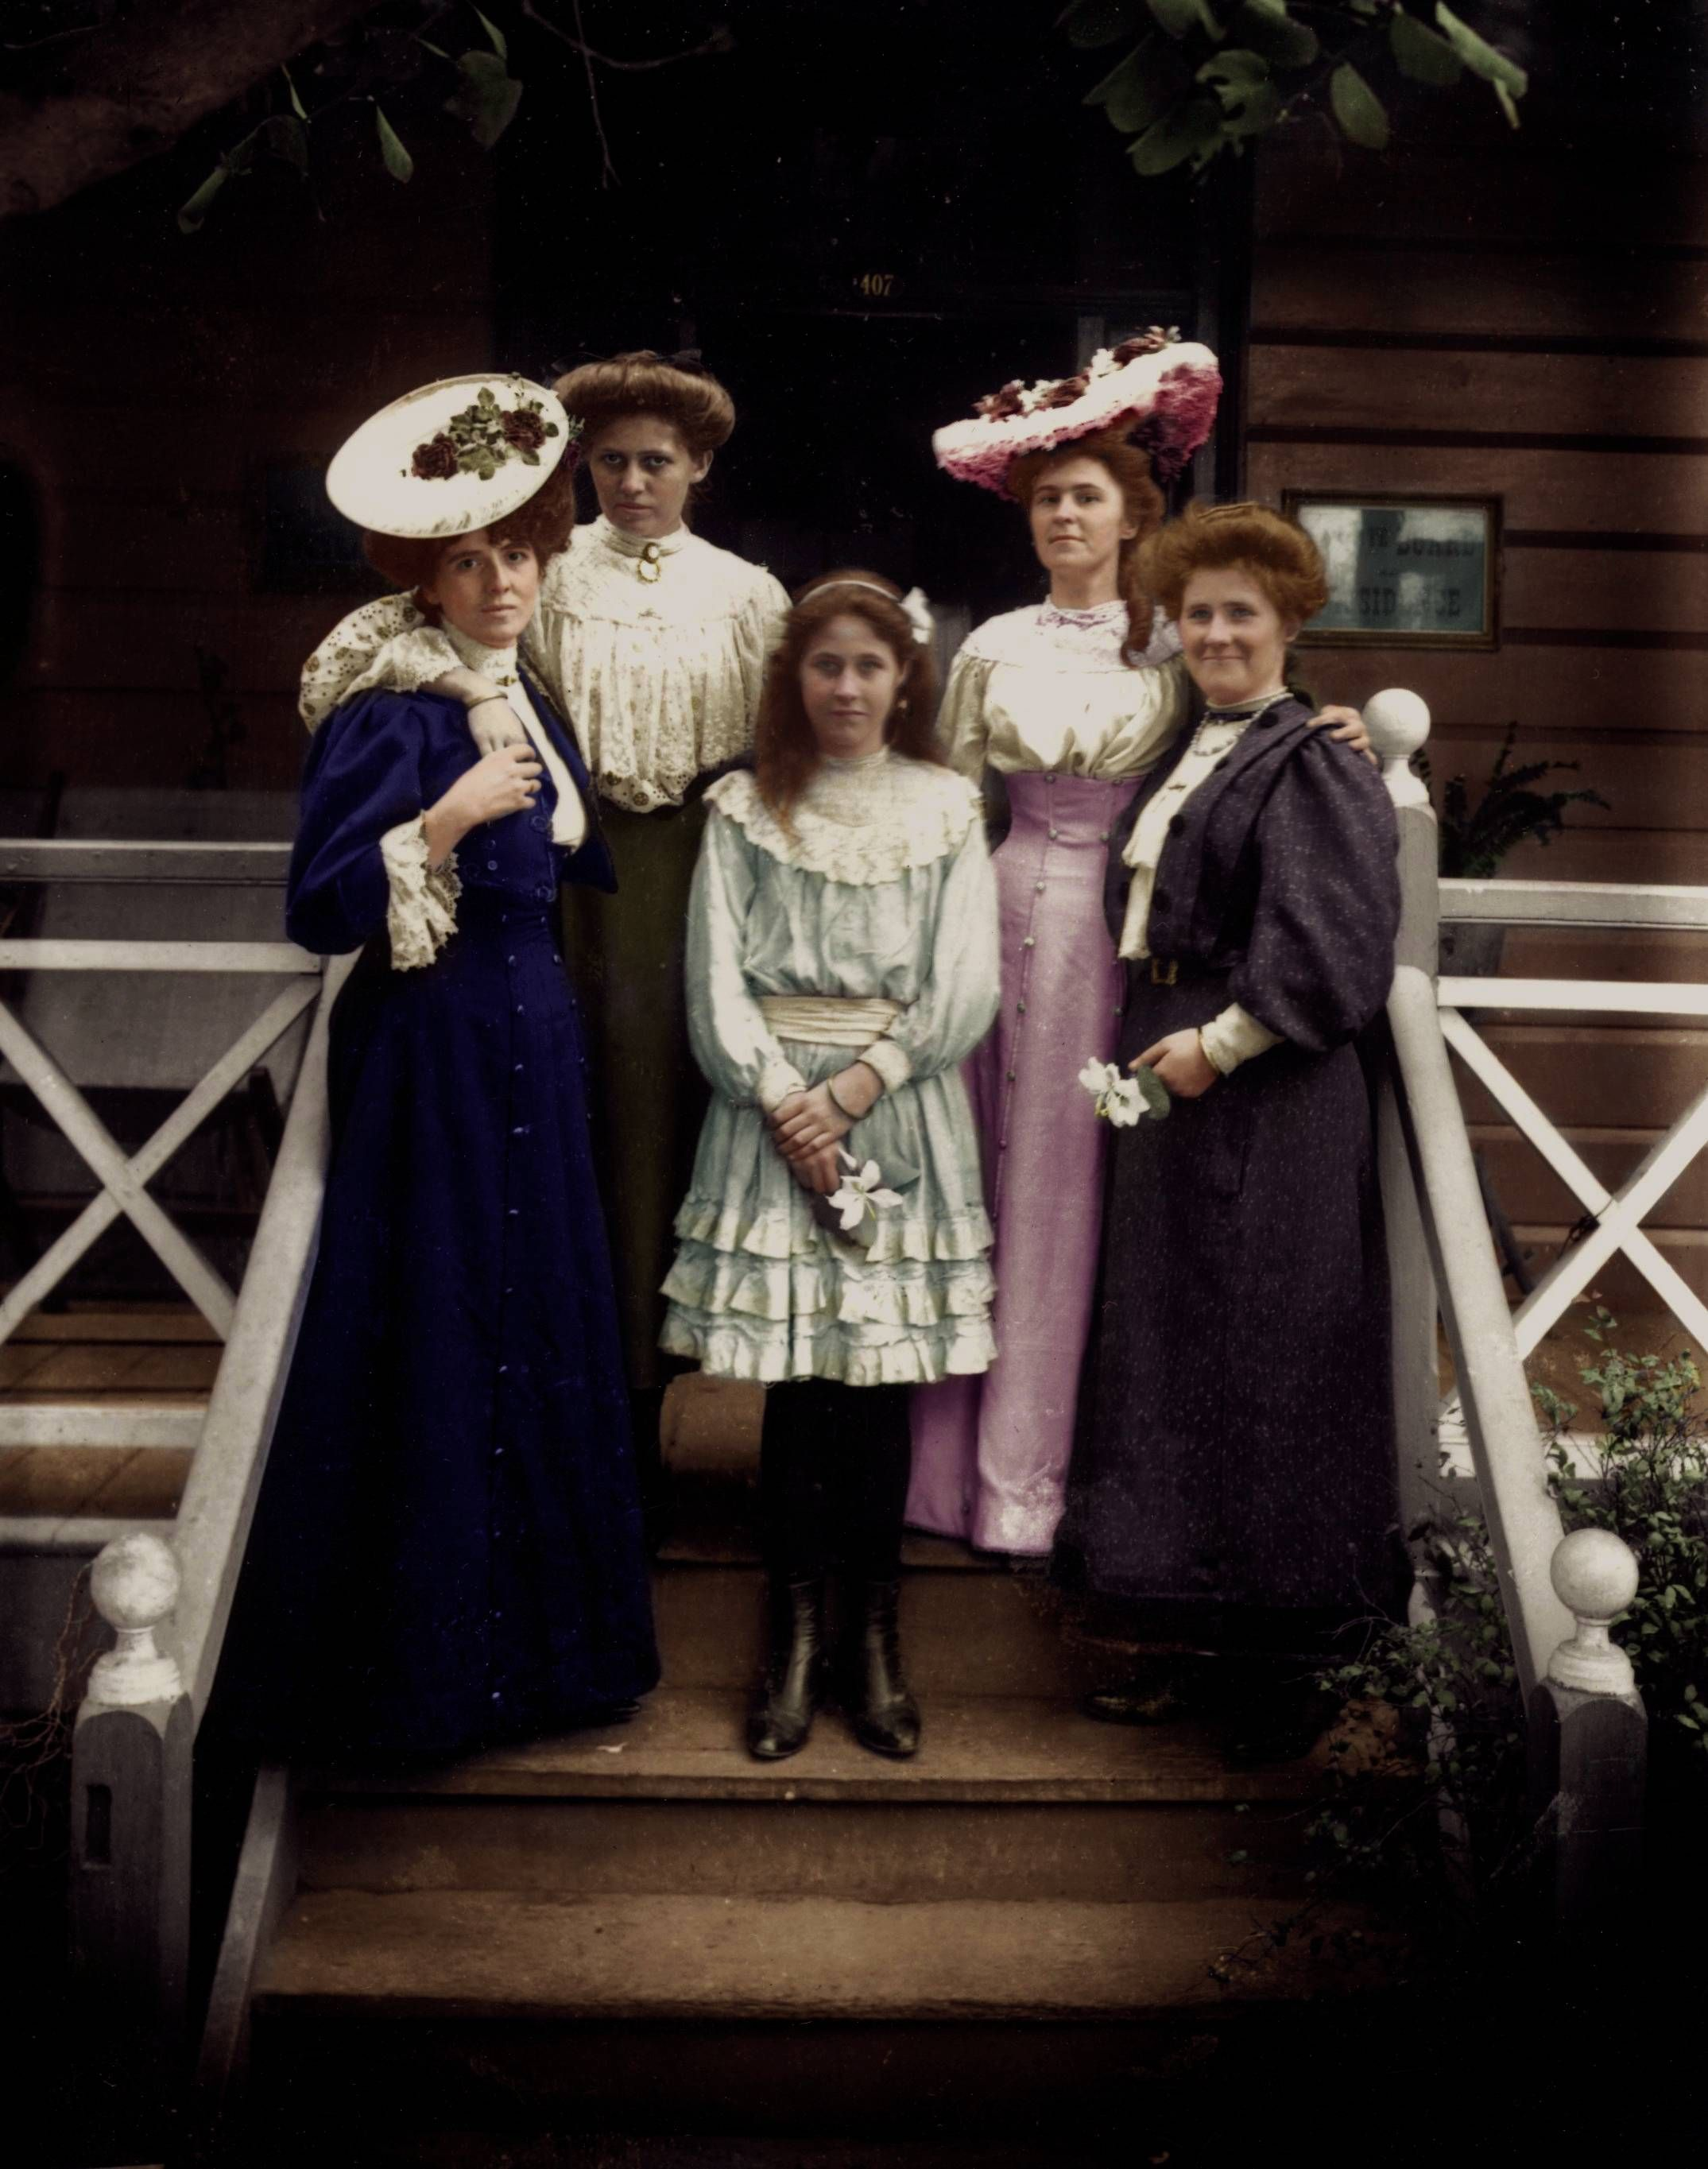 19th century women. (Colorized Photo). Vintage